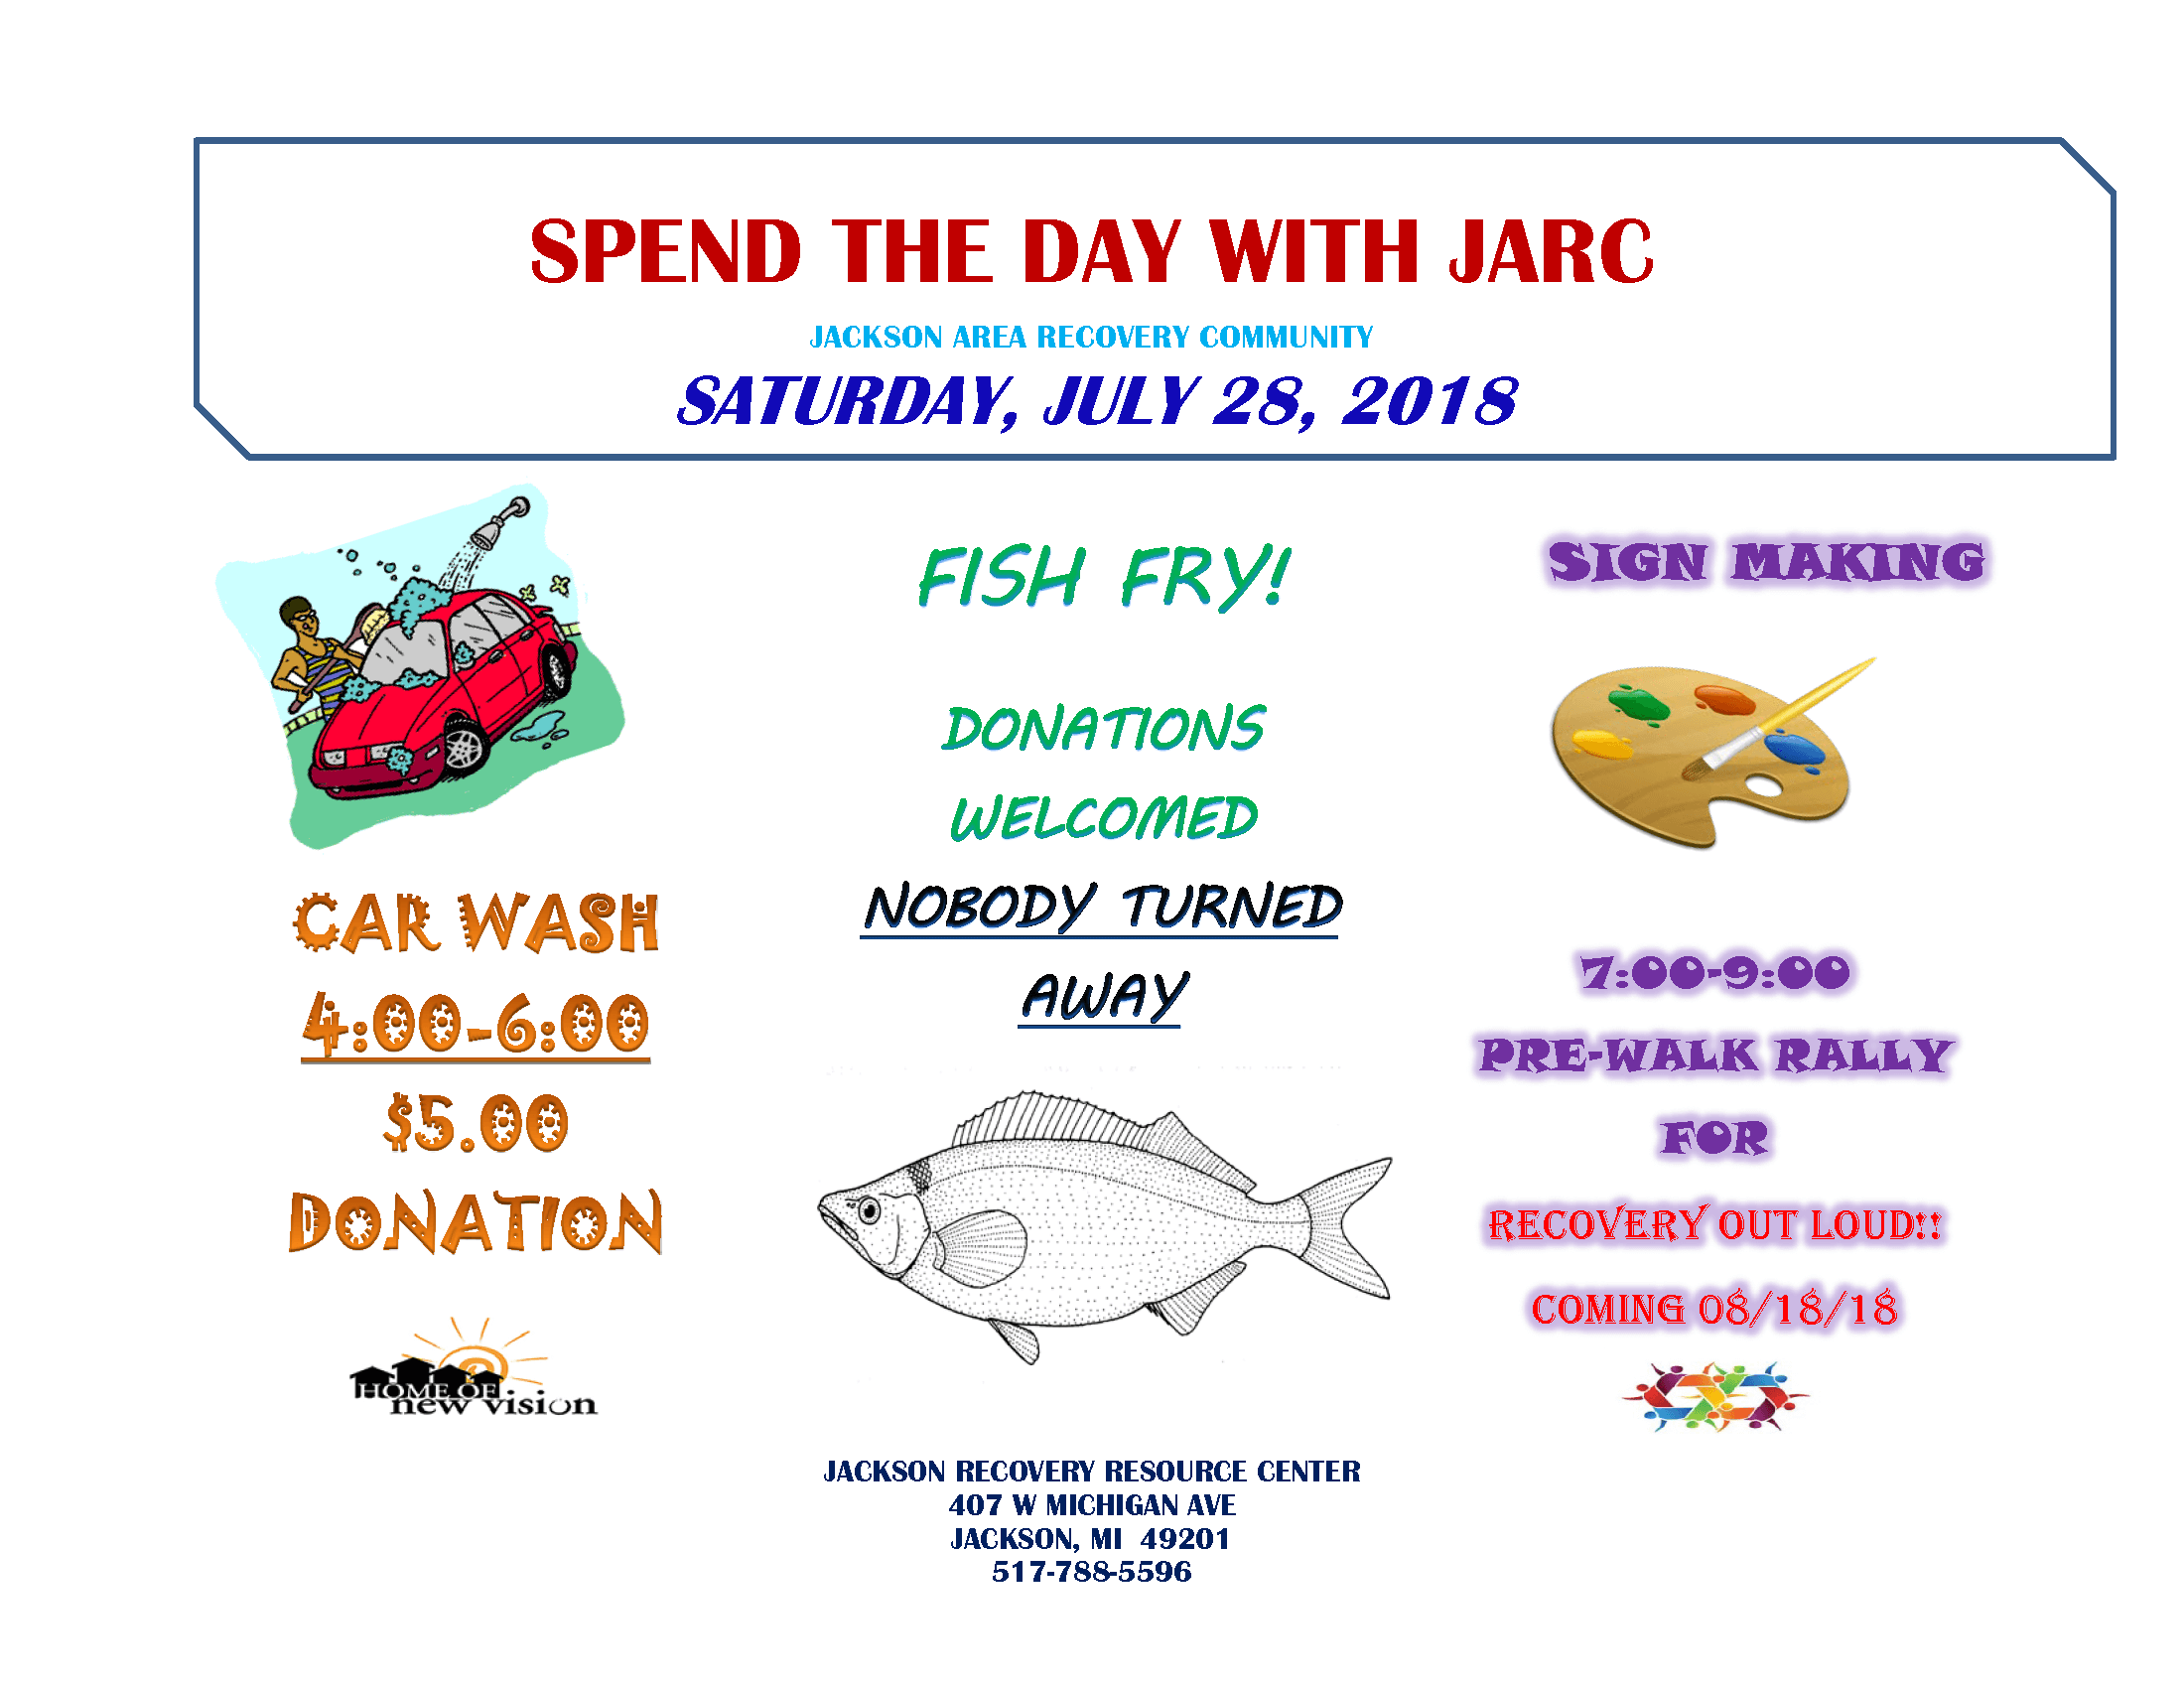 JARC Car Wash and Fish Fry Rally